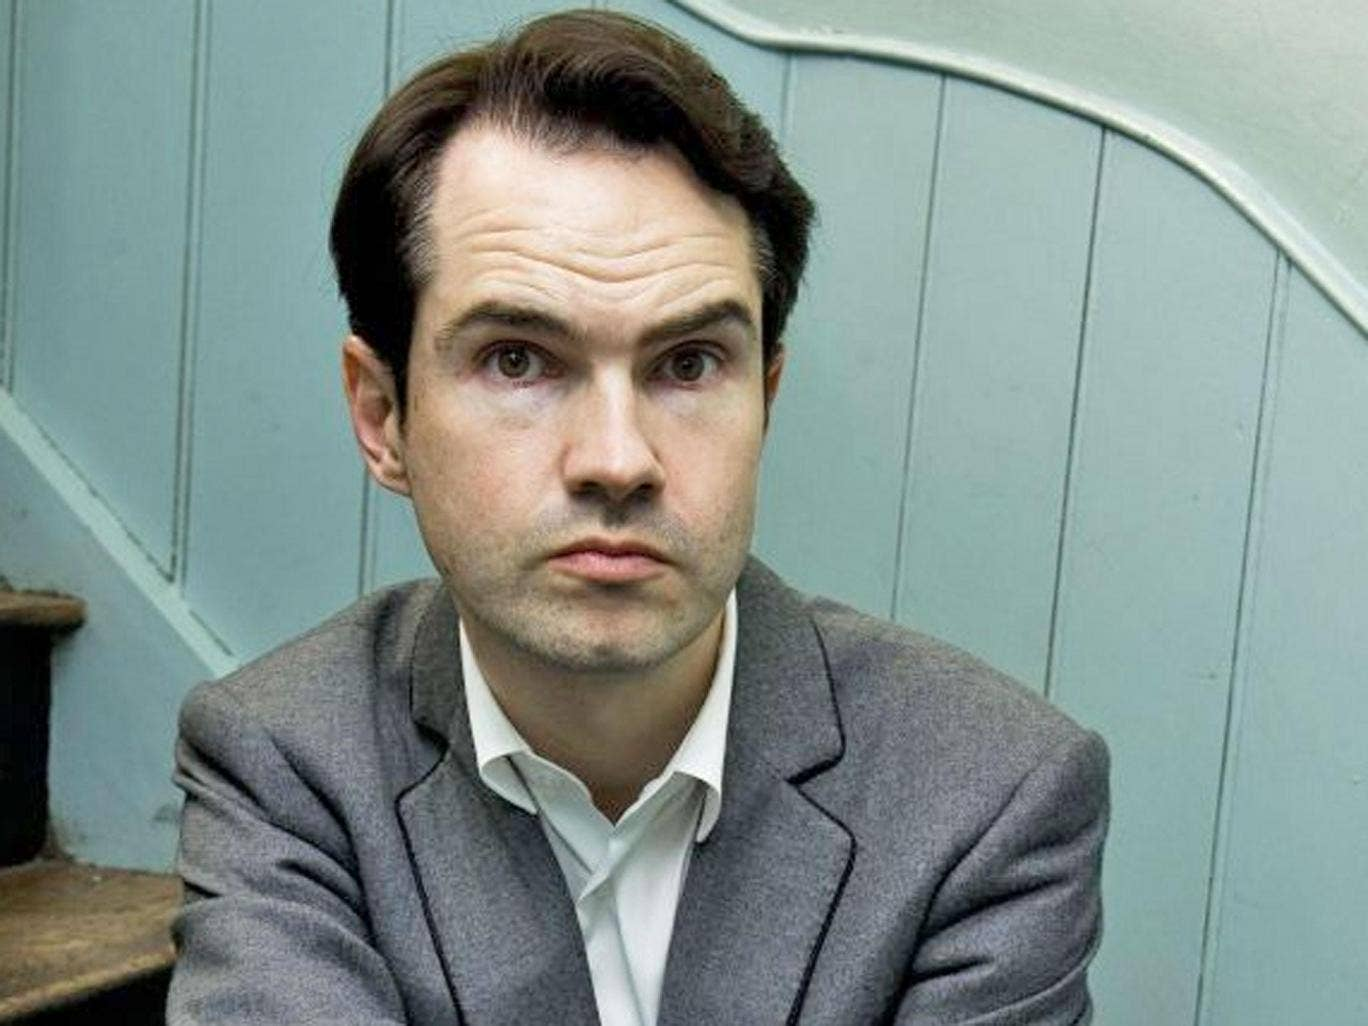 Jimmy Carr: In response to a public backlash, the comedian pulled out of a scheme to cut his tax bill